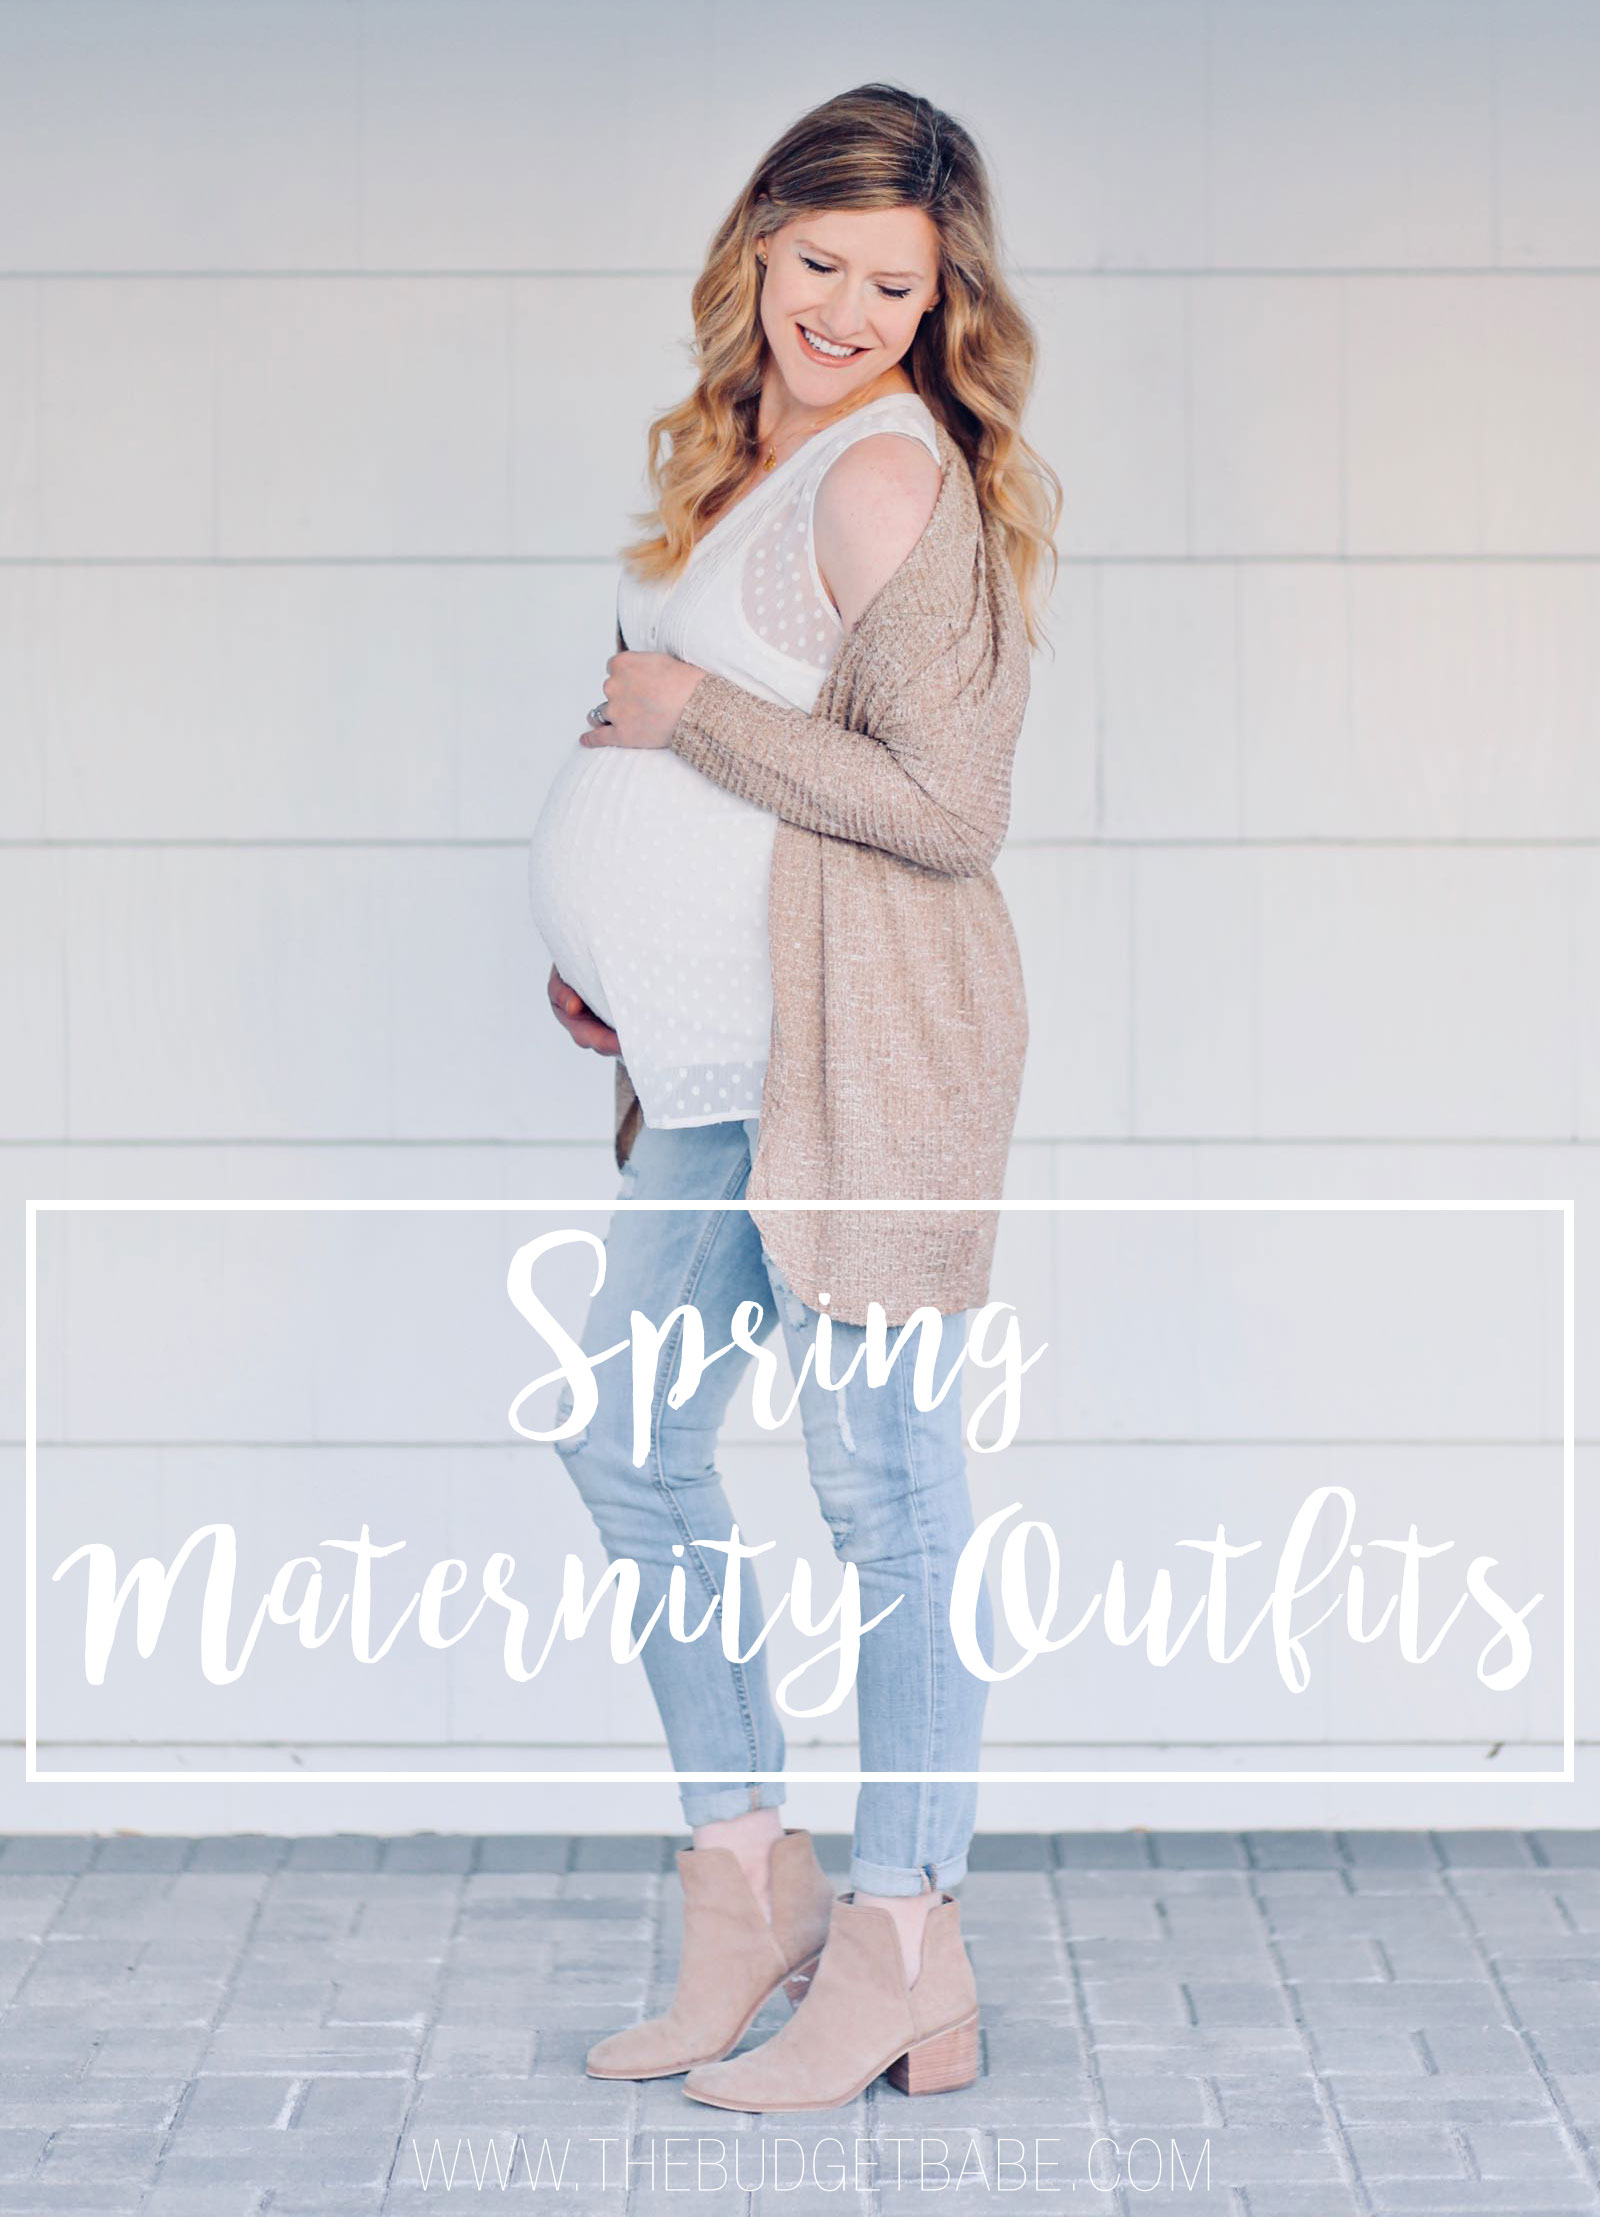 #ad Casual spring outfit idea featuring sleeveless top, distressed jeans and cardigan #40weeksofchic #apeainthepod #motherhoodmaternity #maternityfashion #outfitidea